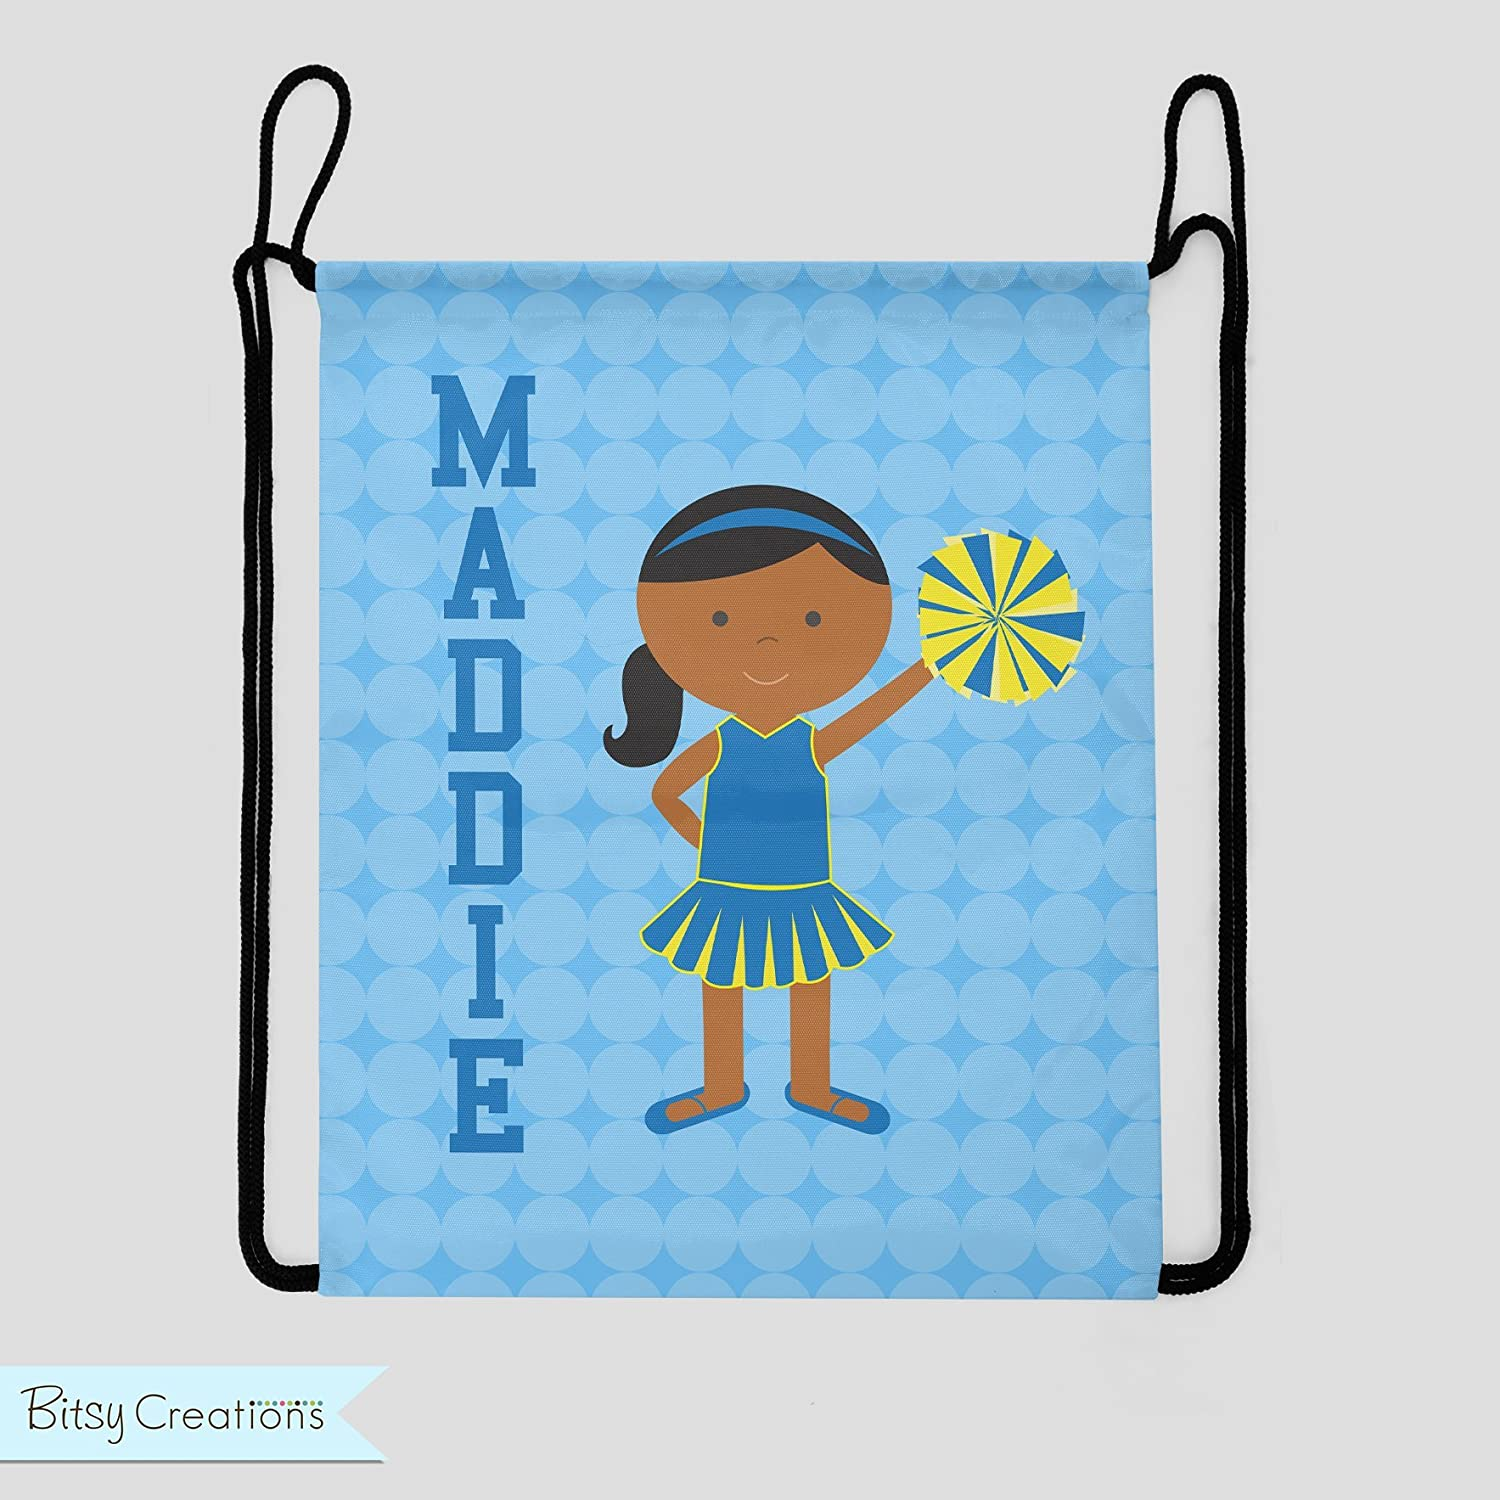 Cheer Drawstring Backpack - Blue and Yellow - You Choose Hair and Skin Color - Personalized Bag - Sports Bag - Cheerleading Bag